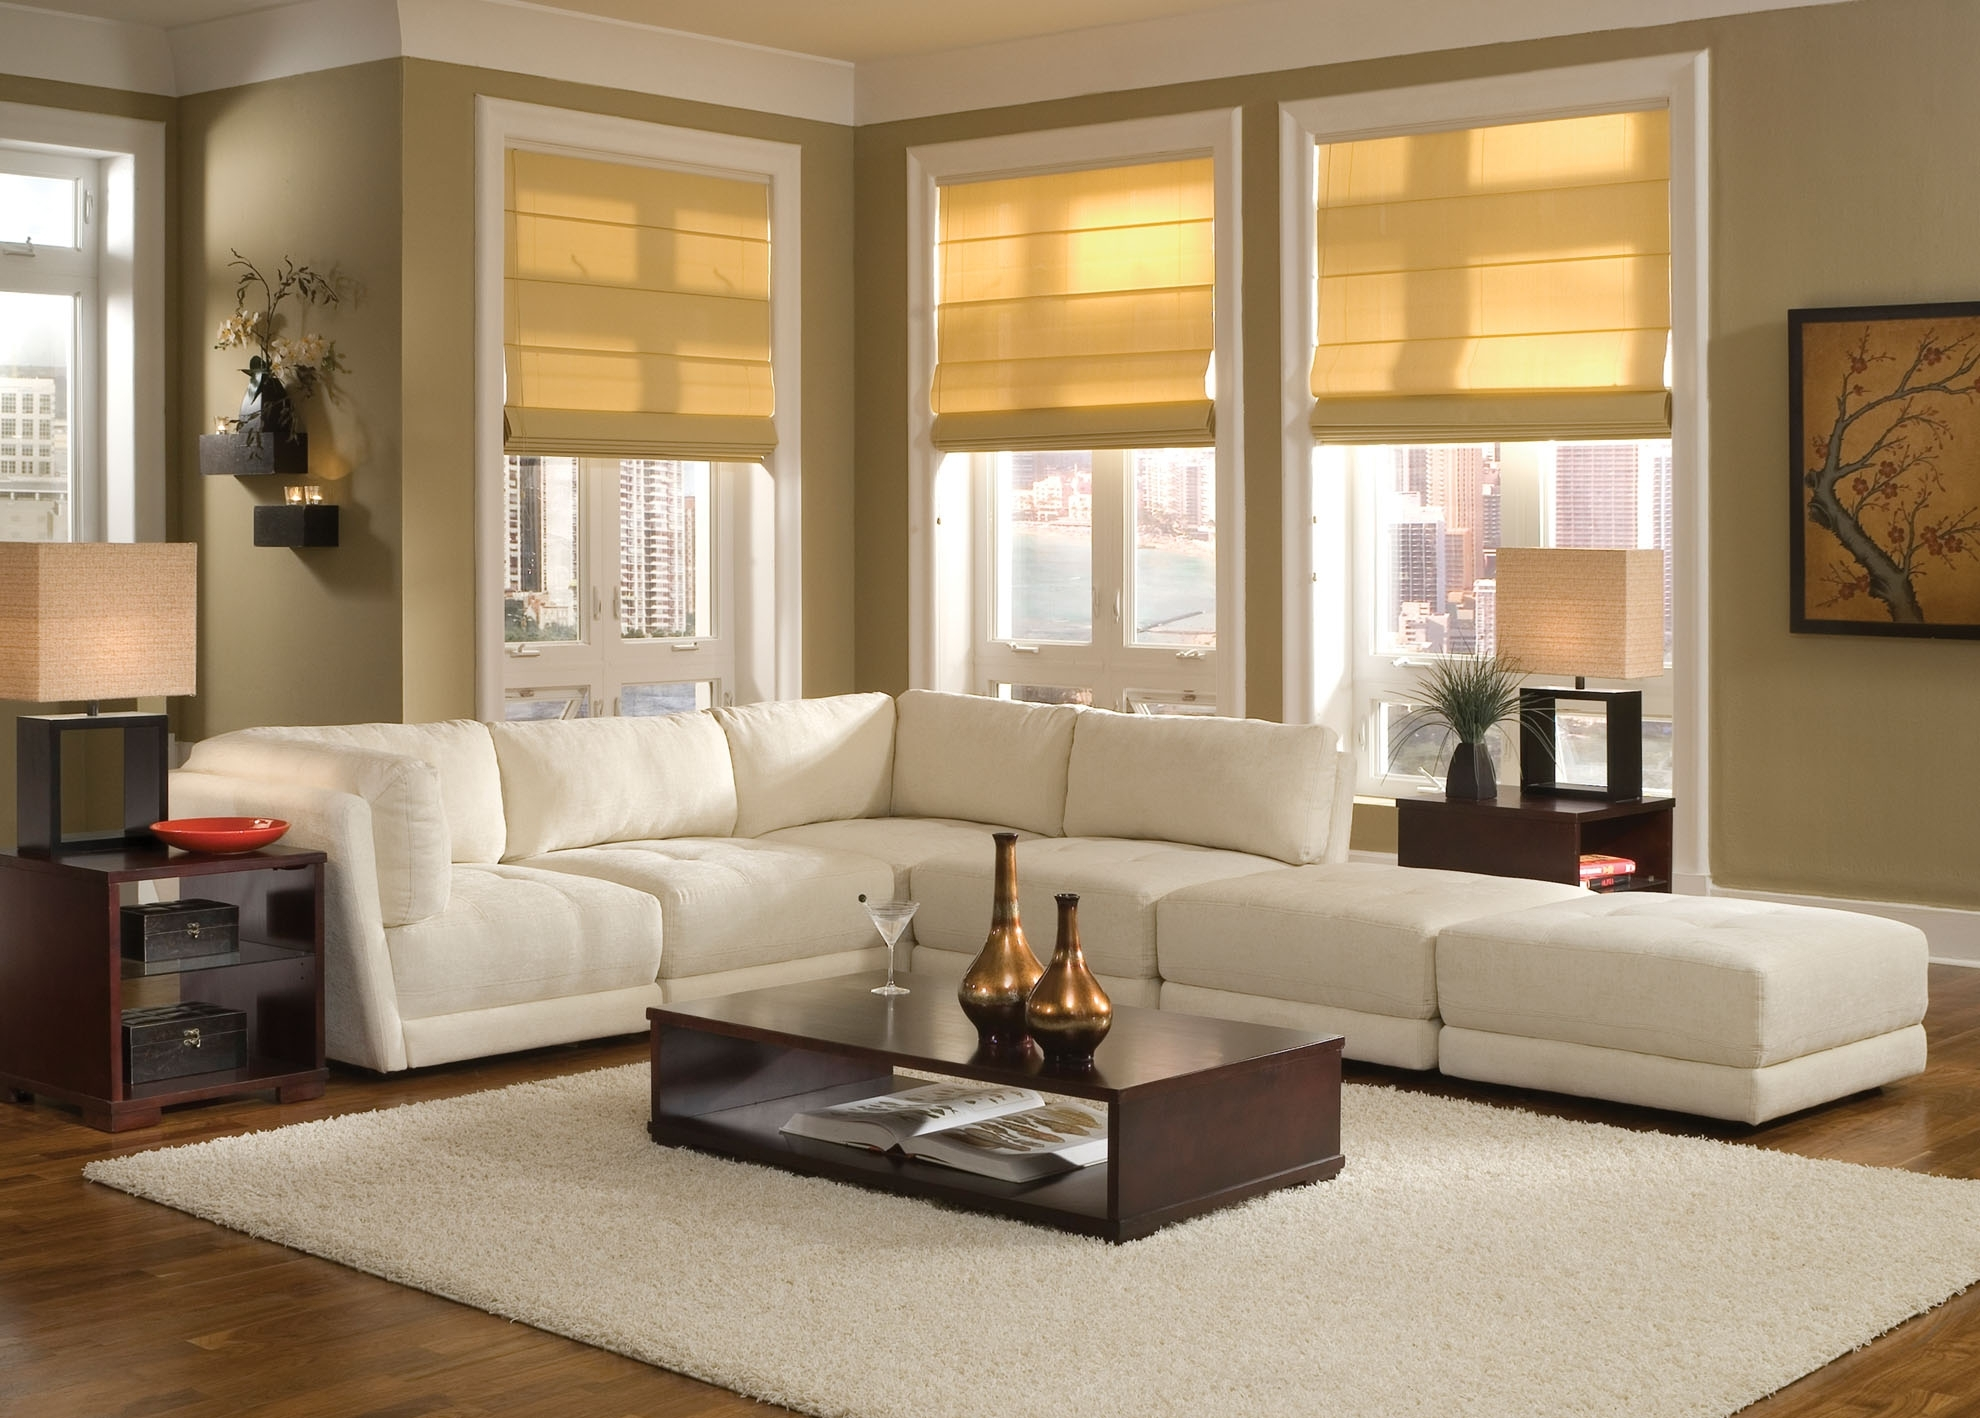 White Sofa Design Ideas & Pictures For Living Room Pertaining To Sectional Sofas Decorating (View 10 of 10)